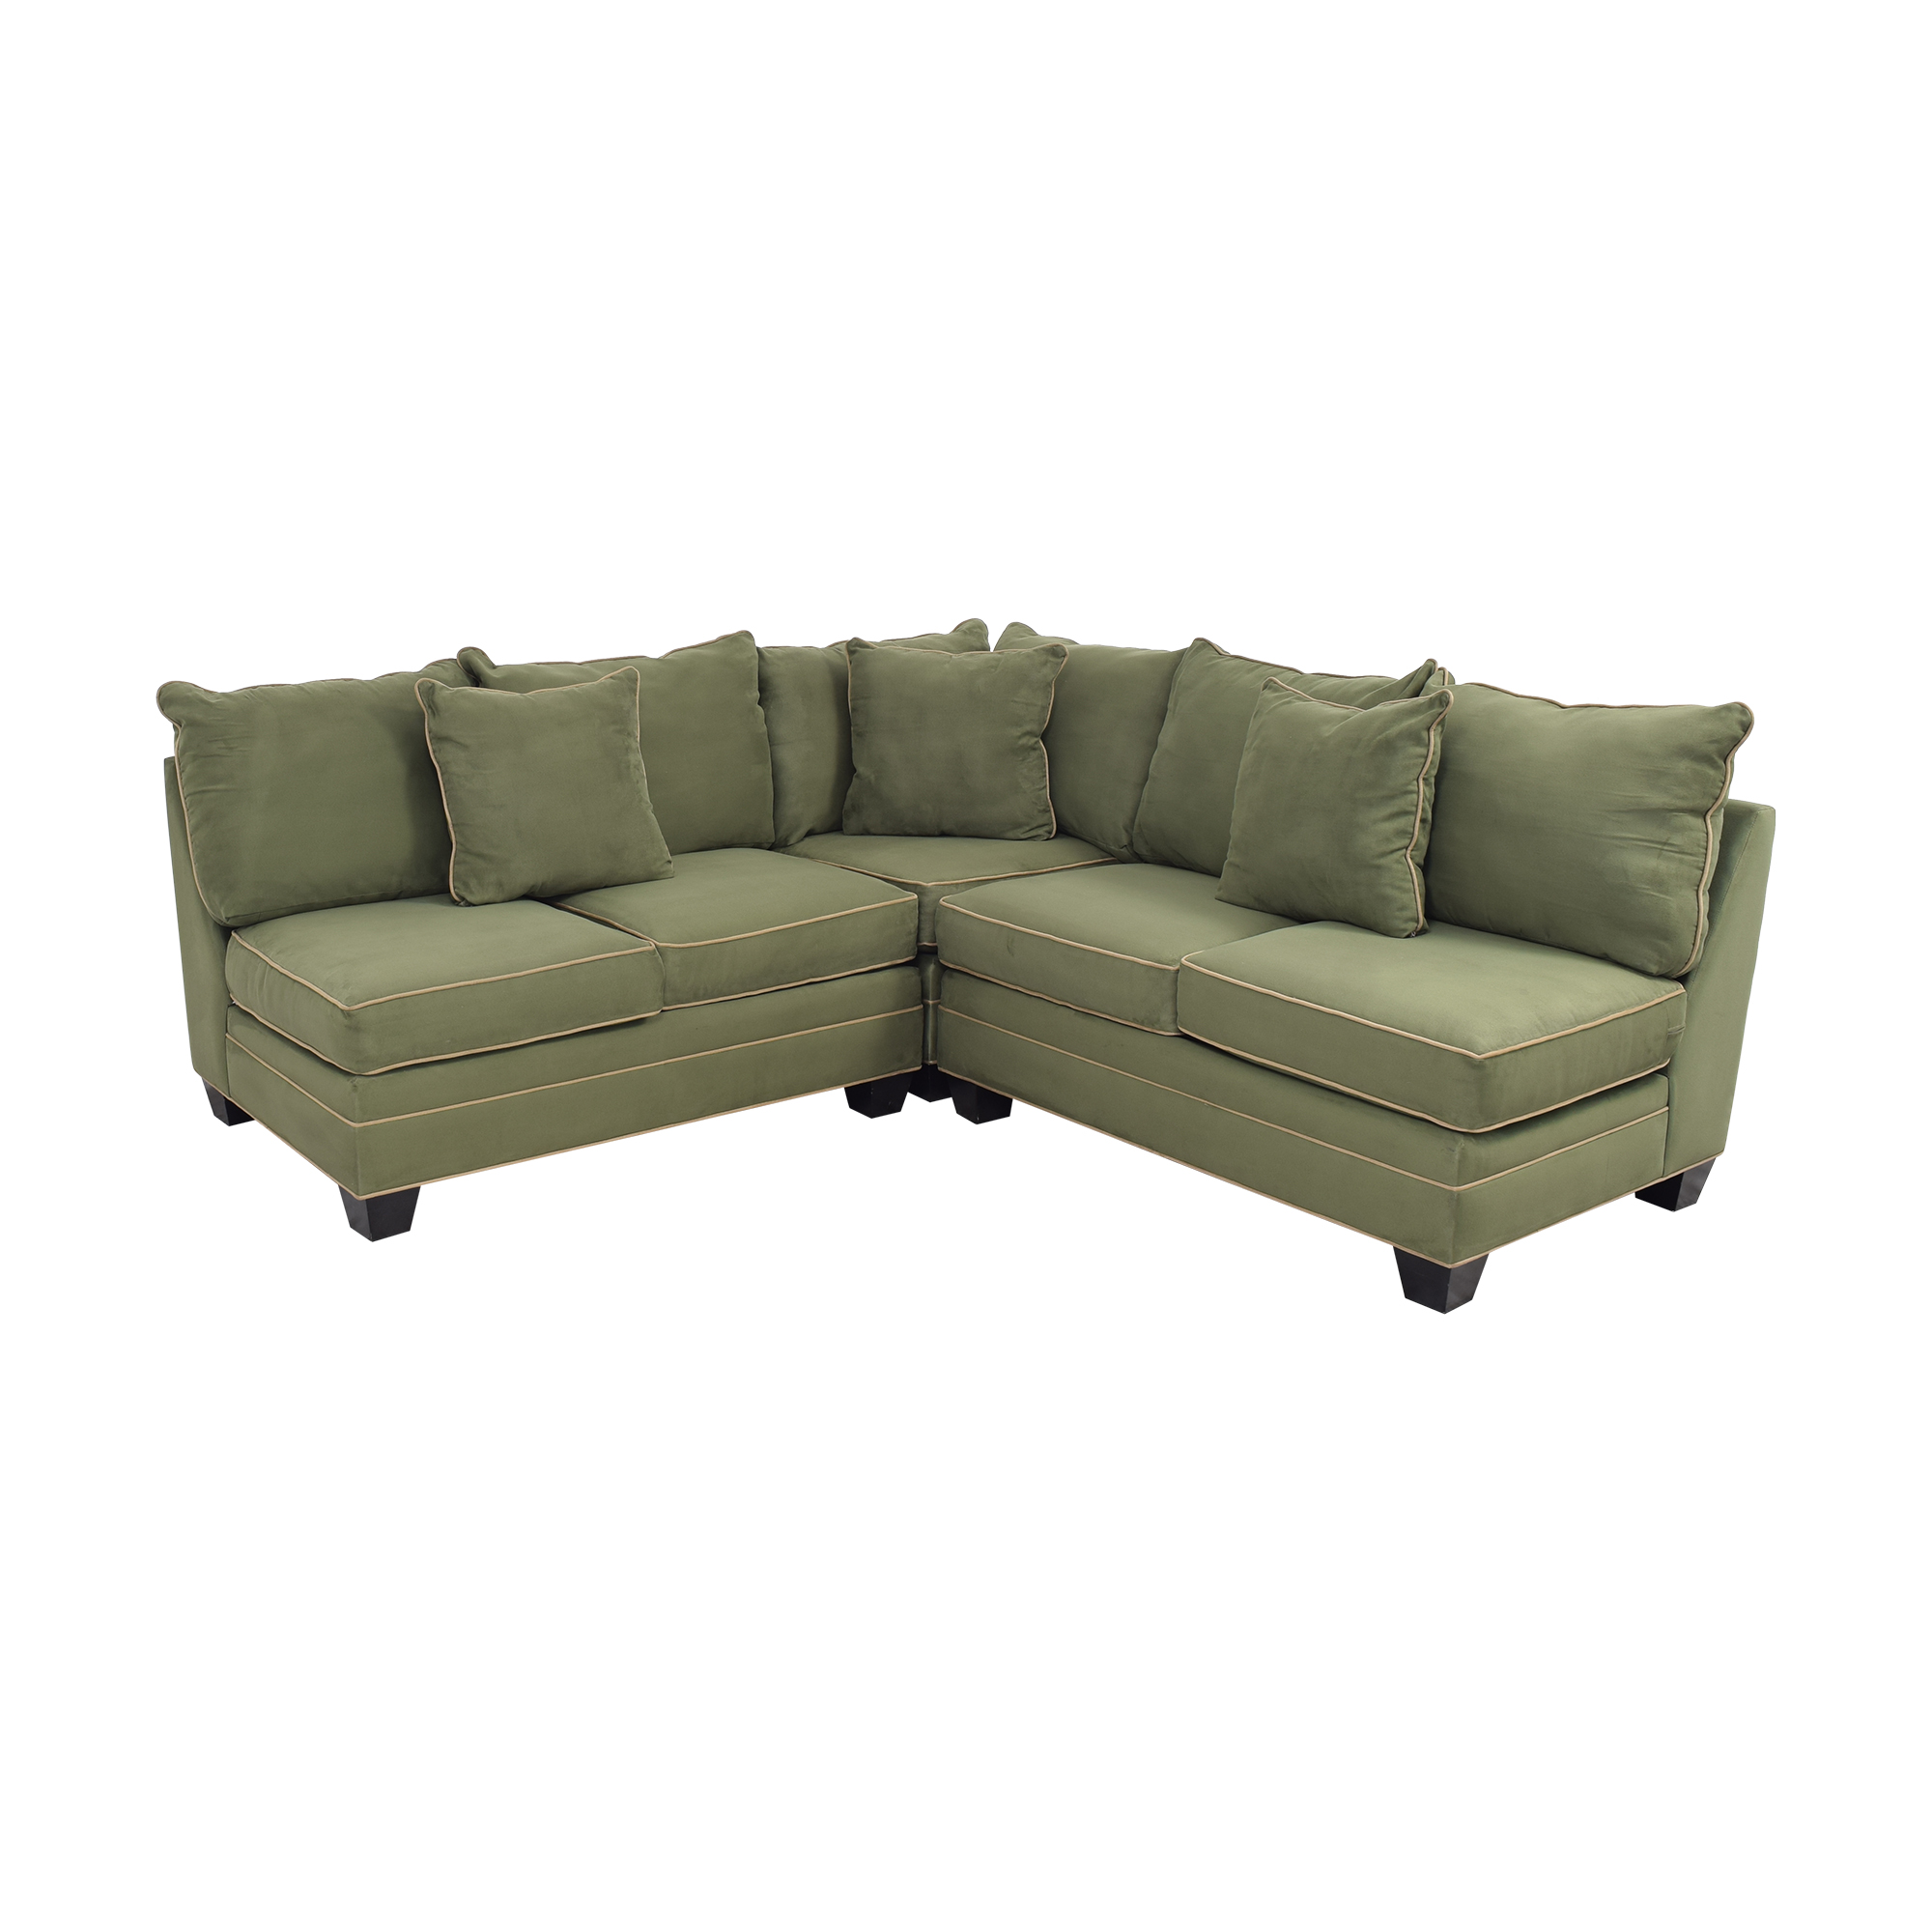 HM Richards Furniture HM Richards Furniture Sectional Sofa discount